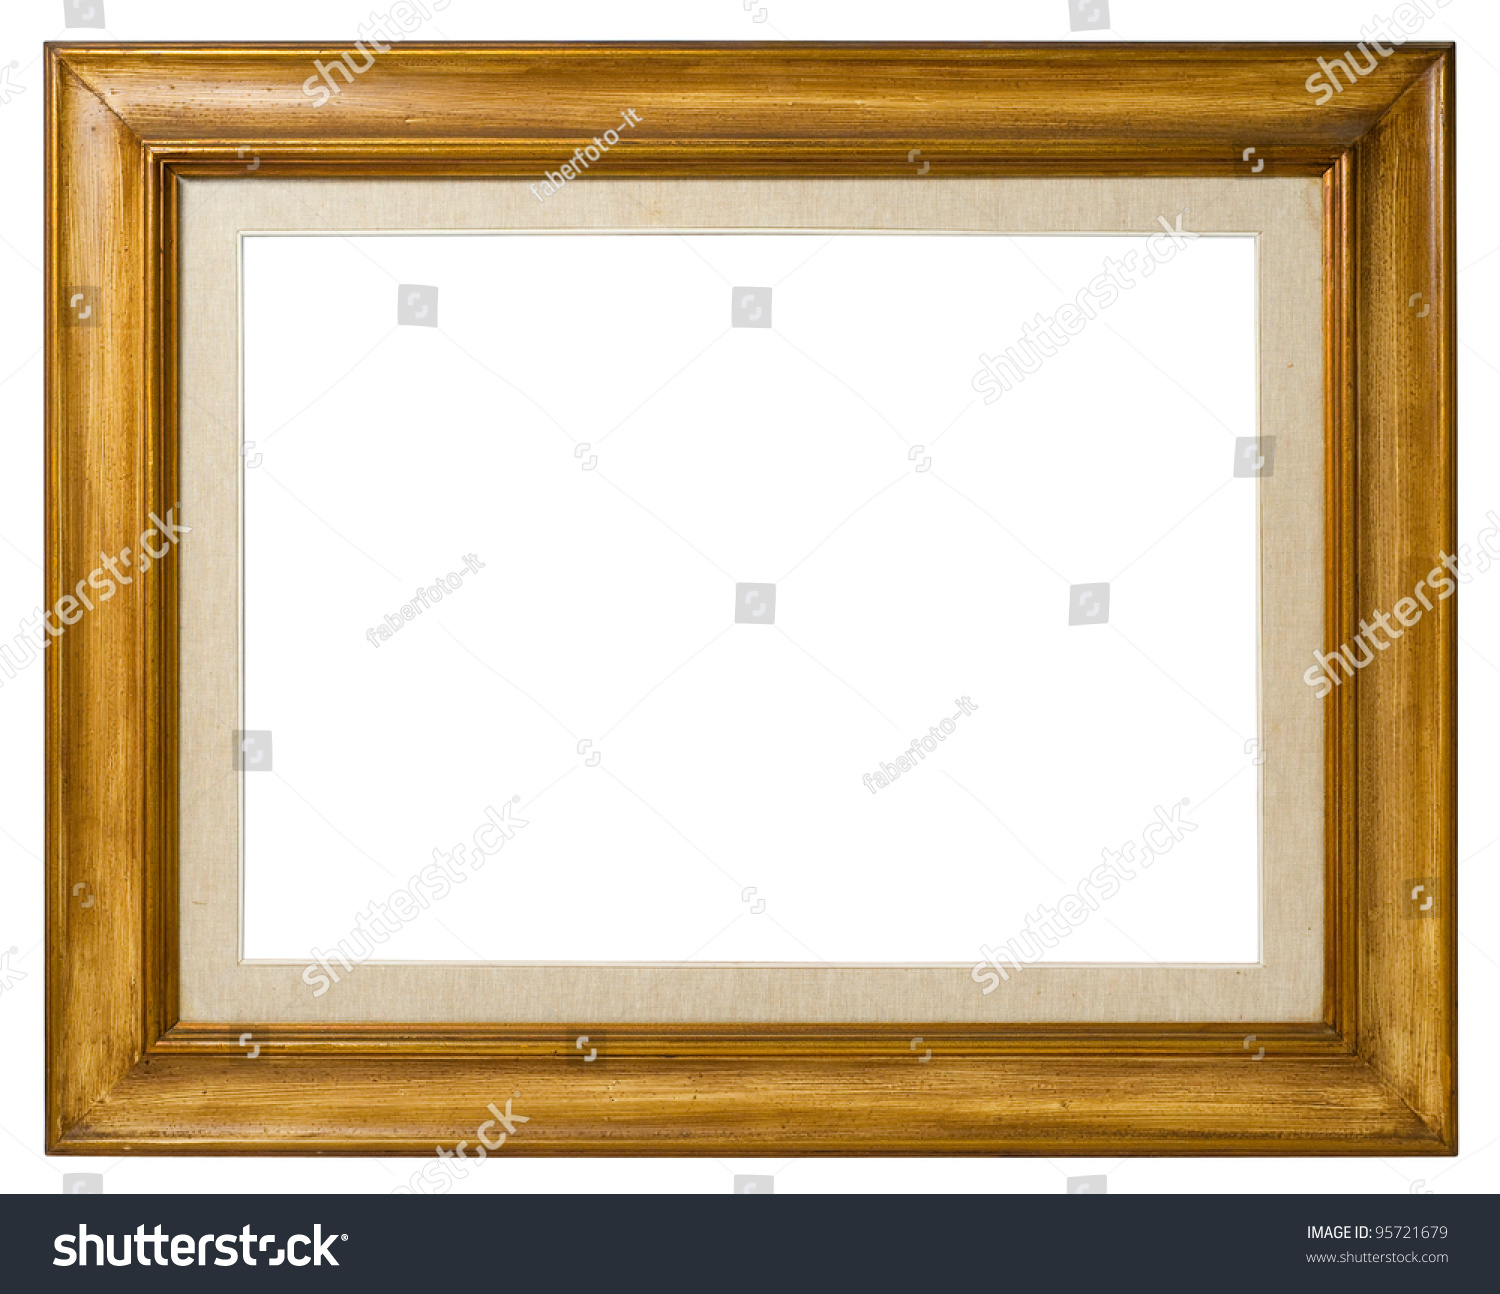 antique double frame wood and canvas italian style isolated on white background